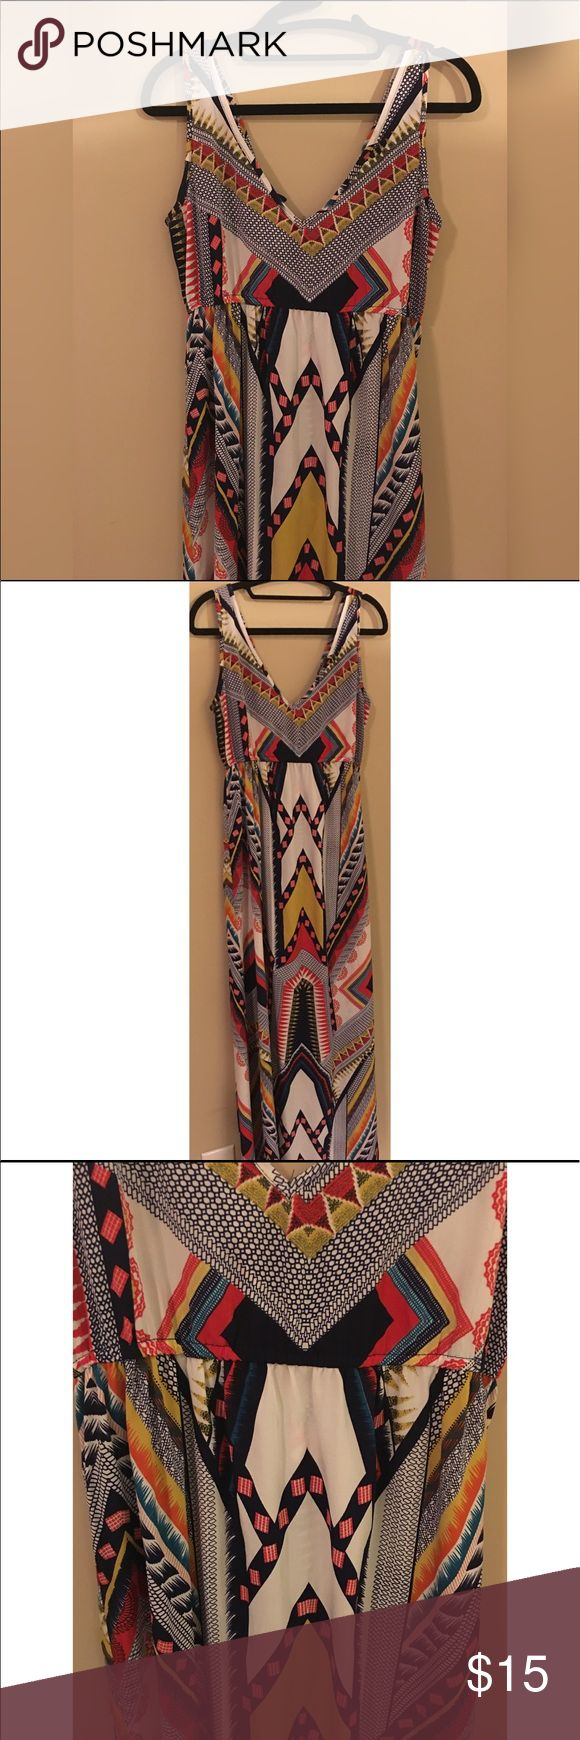 "Tribal Aztec Print Maxi Dress Boho Festival Wear-L Long, flowy beautiful Maxi dress with a unique print. Has keyhole closure in the back. Made by Earthbound Trading Company. It is adorable, but it does not fit me. See pictures for chest measurements. Length is approximately 54"". Ref8#oooq Earthbound Trading Company Dresses Maxi"